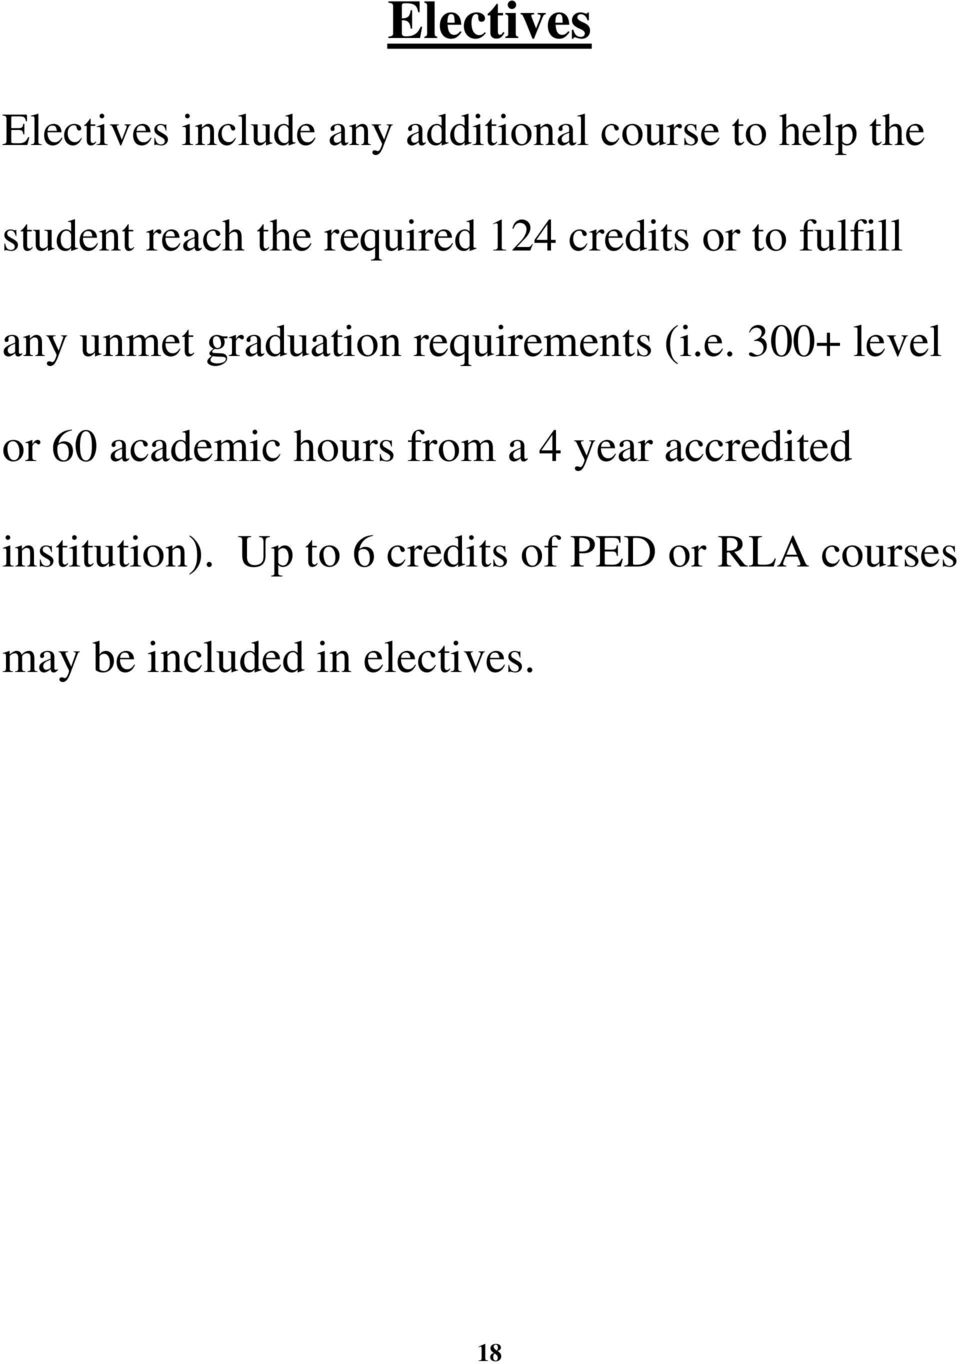 requirements (i.e. 300+ level or 60 academic hours from a 4 year accredited institution).